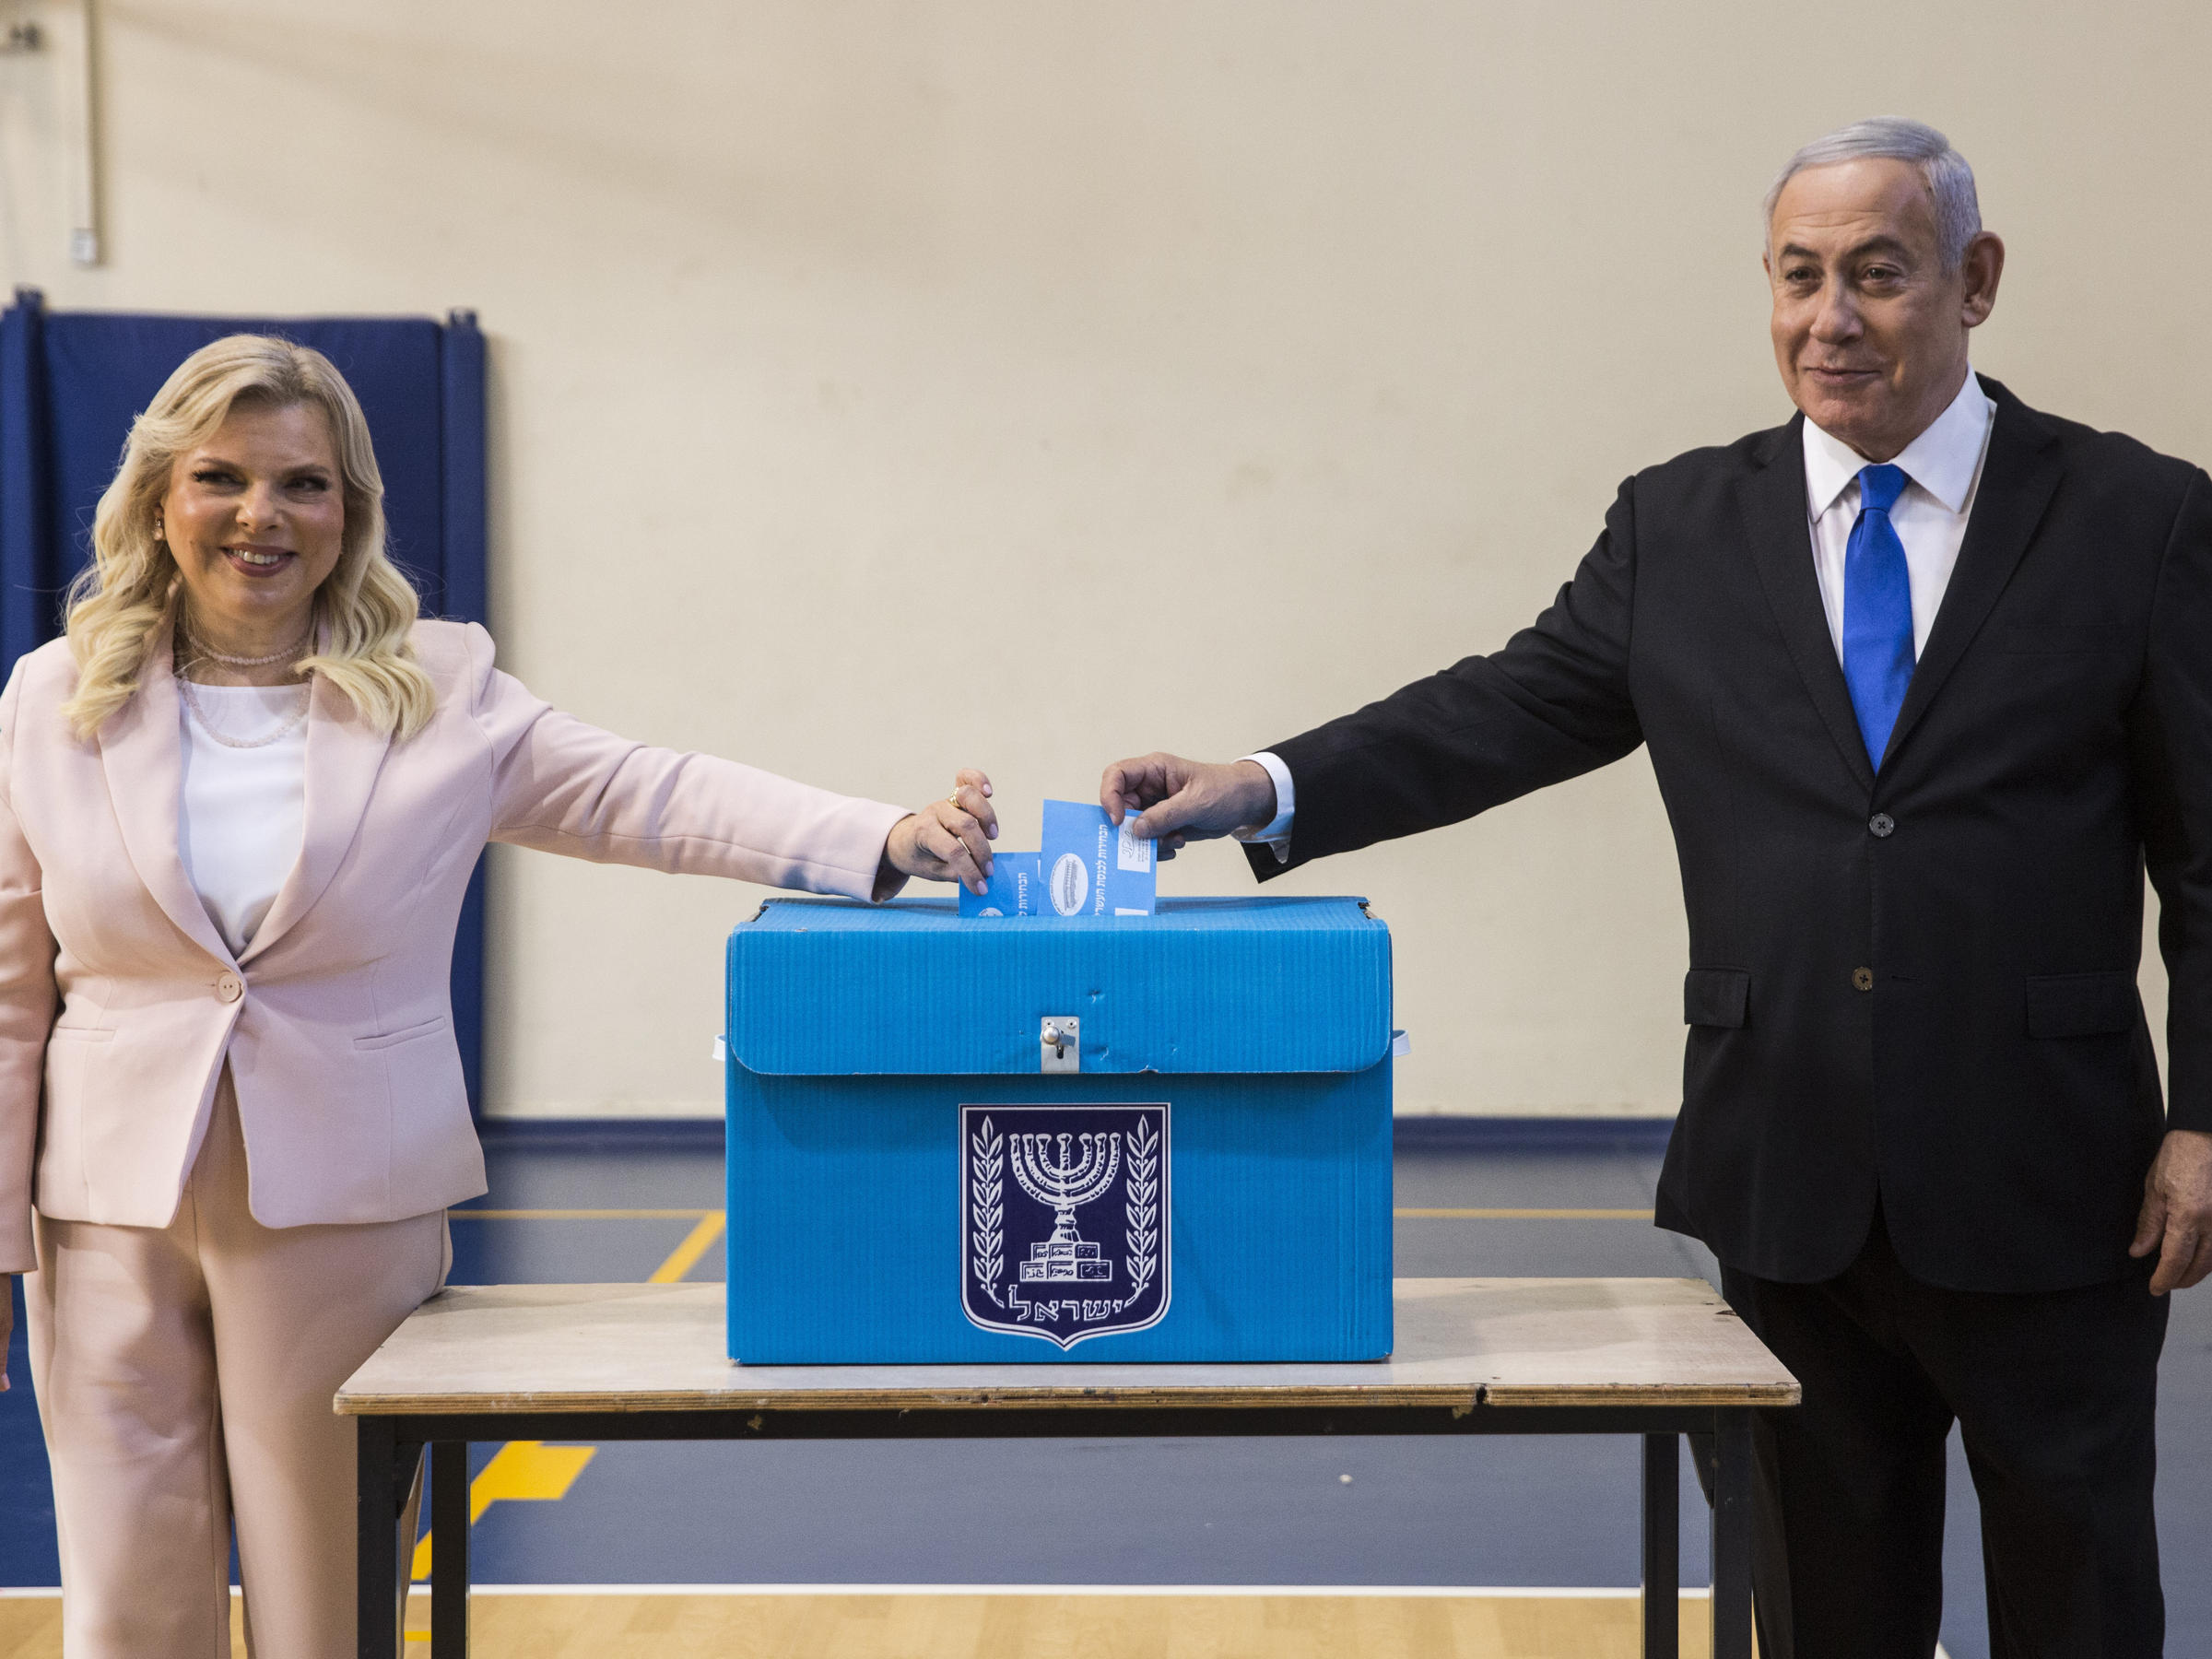 Israelis Go To Polls As Netanyahu Aims To Hold Power Amid Corruption Scandals